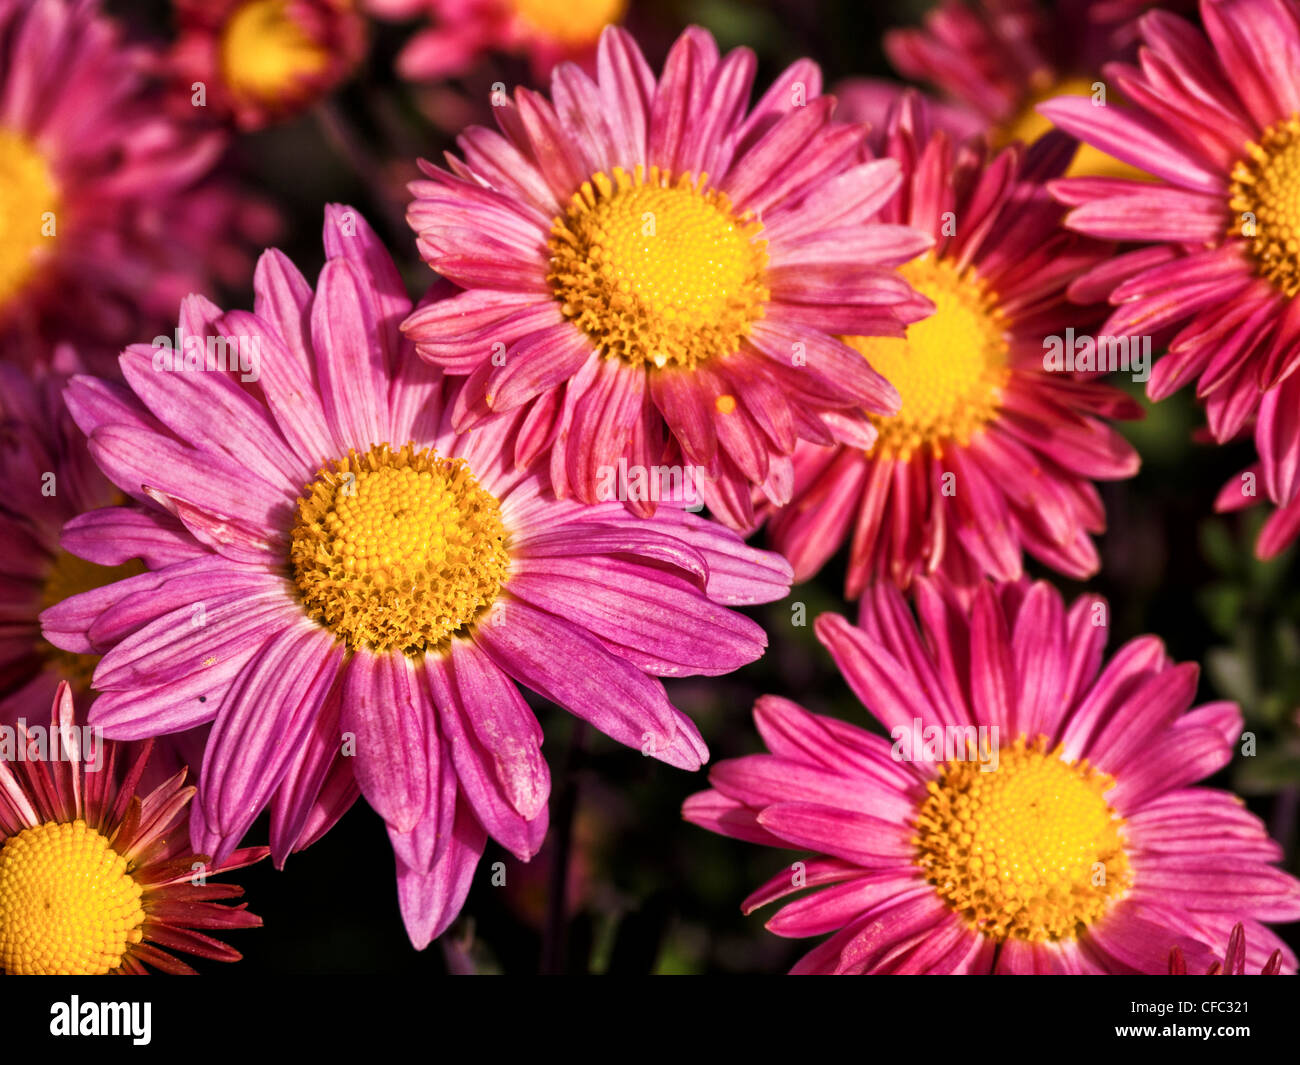 aster, Asteraceae, flowers, blossom, bloom, flora, garden, gardening, horticulture, yellow, canton Bern, aster family, - Stock Image